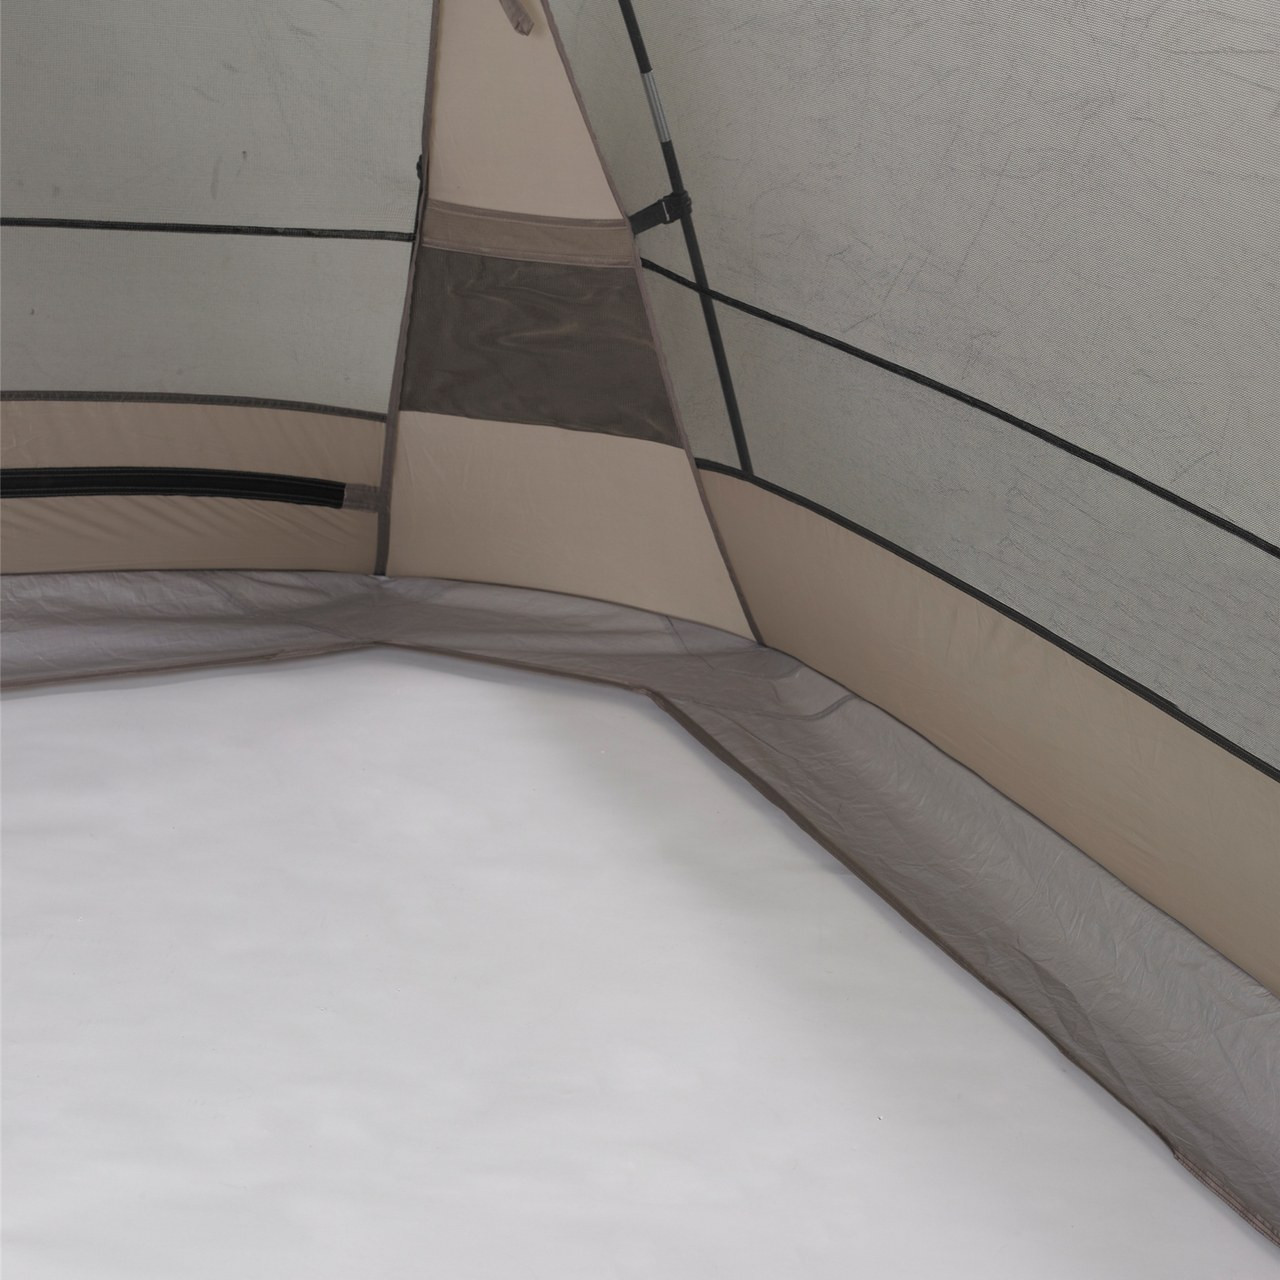 Close up view of a corner from the inside of the Wenzel Sun Valley shelter